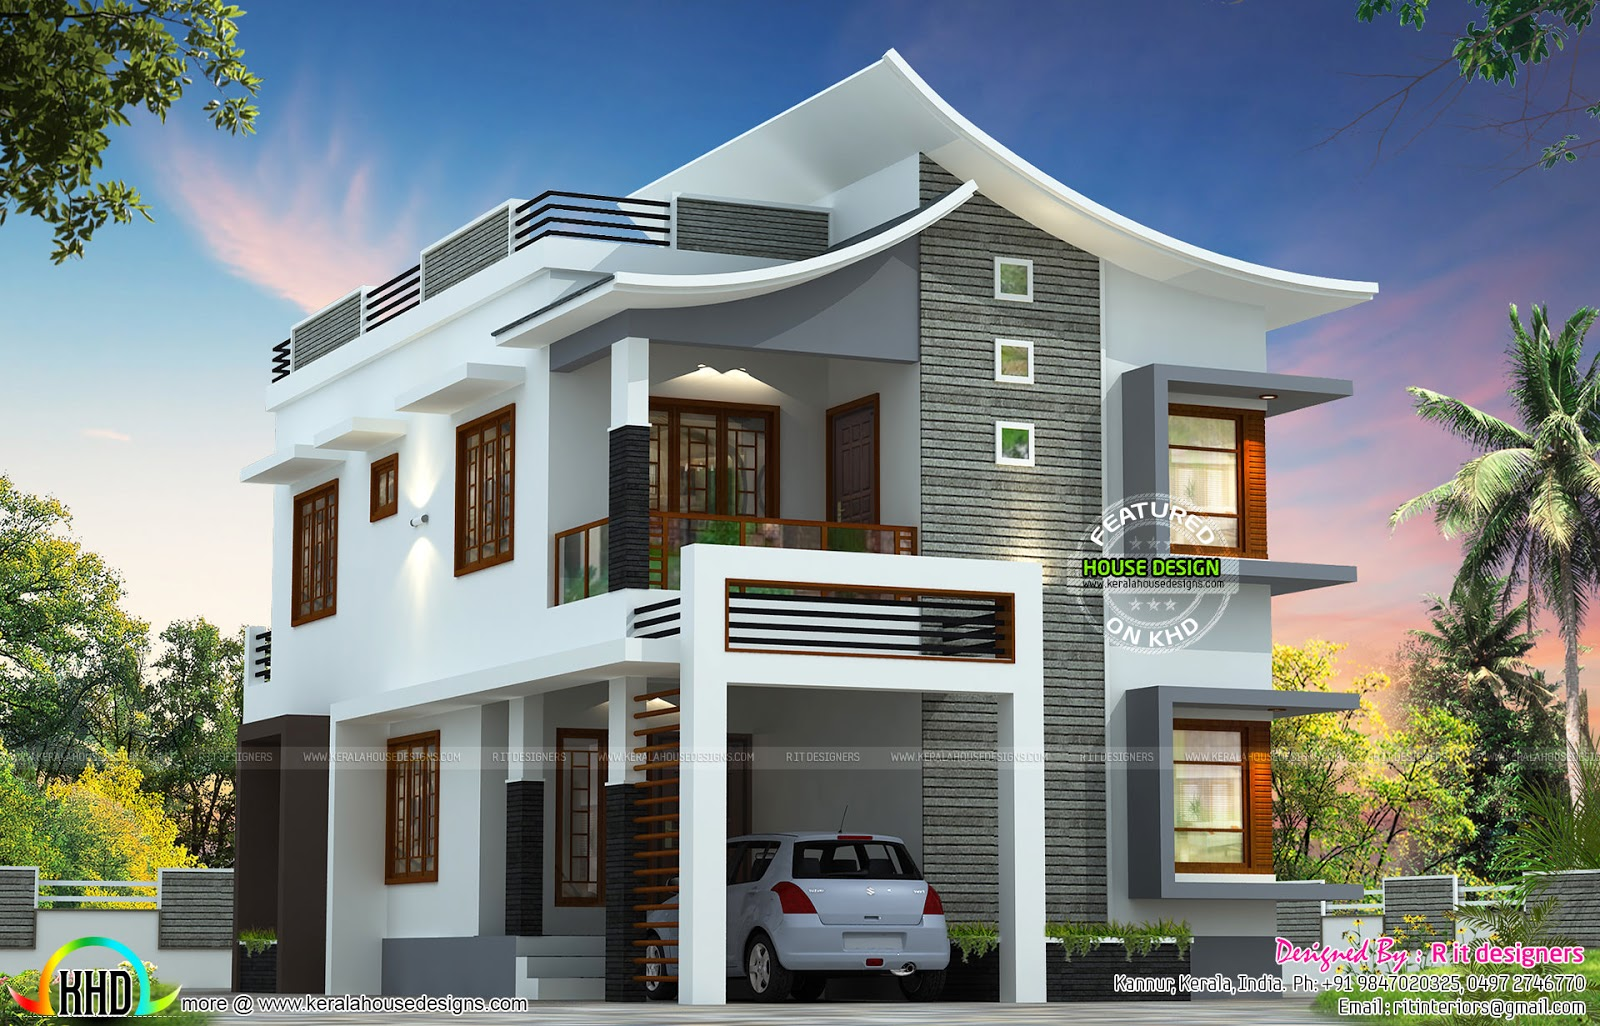 House Plan For 700 Sq Ft East Facing furthermore Rainbow City Coimbatore Residential Property moreover 3 Bedroom 2 Bath Alleghany besides Wrap Around Porch House Plan furthermore Floorplans. on 1100 sq foot floor plan